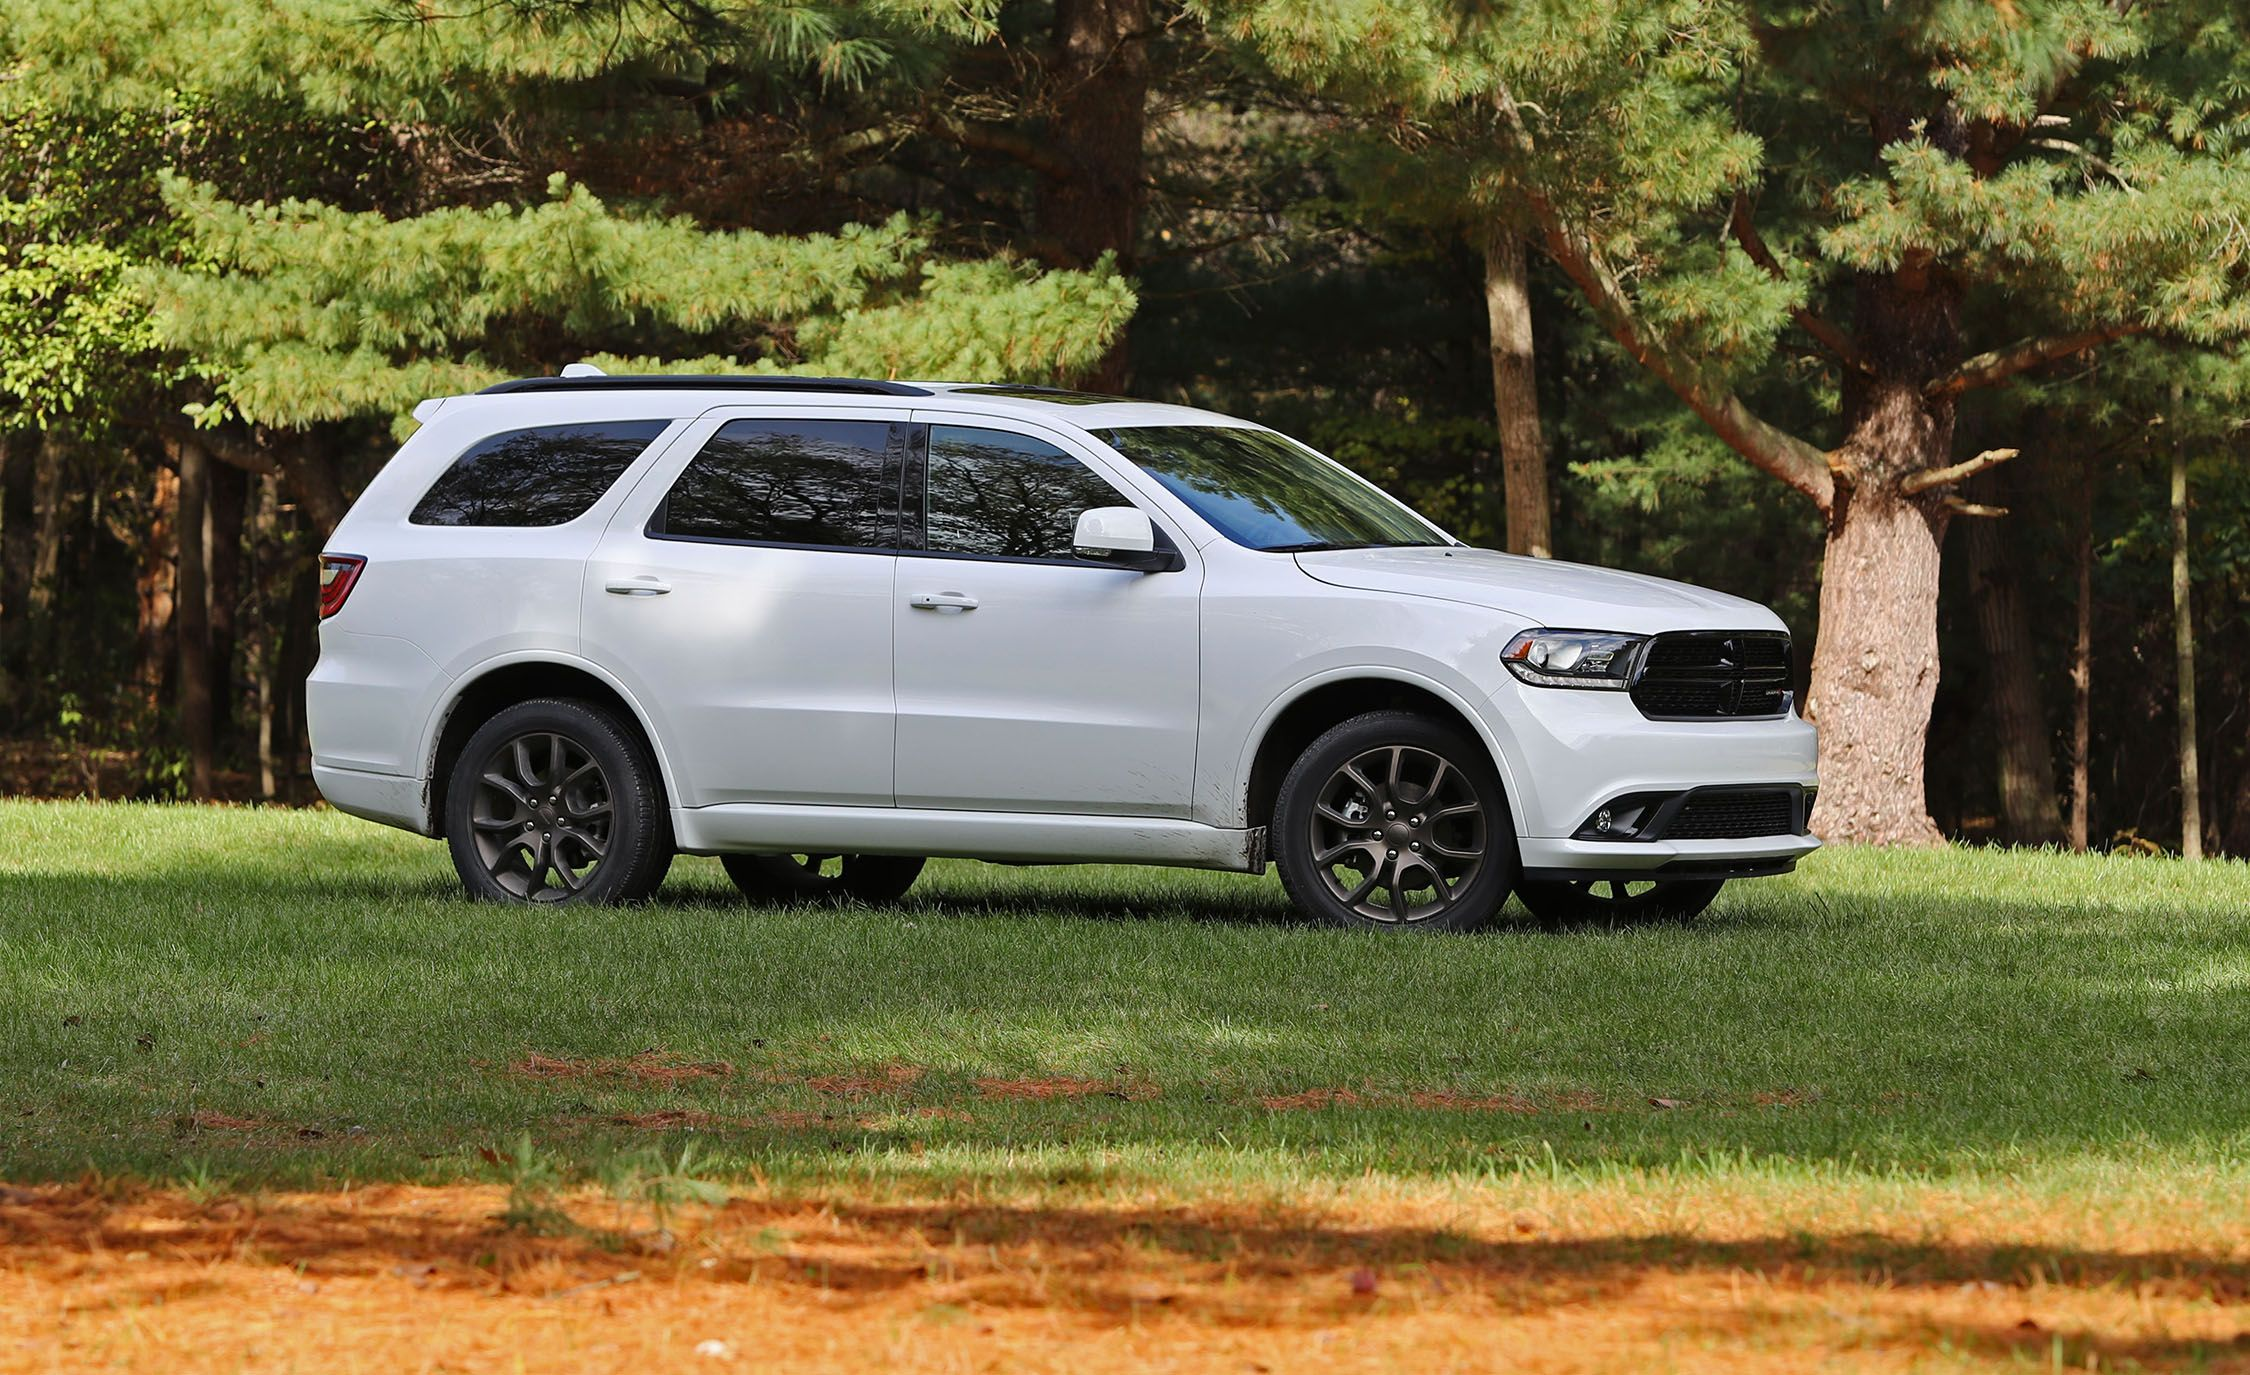 Best Car Warranty >> 2018 Dodge Durango | In-Depth Model Review | Car and Driver